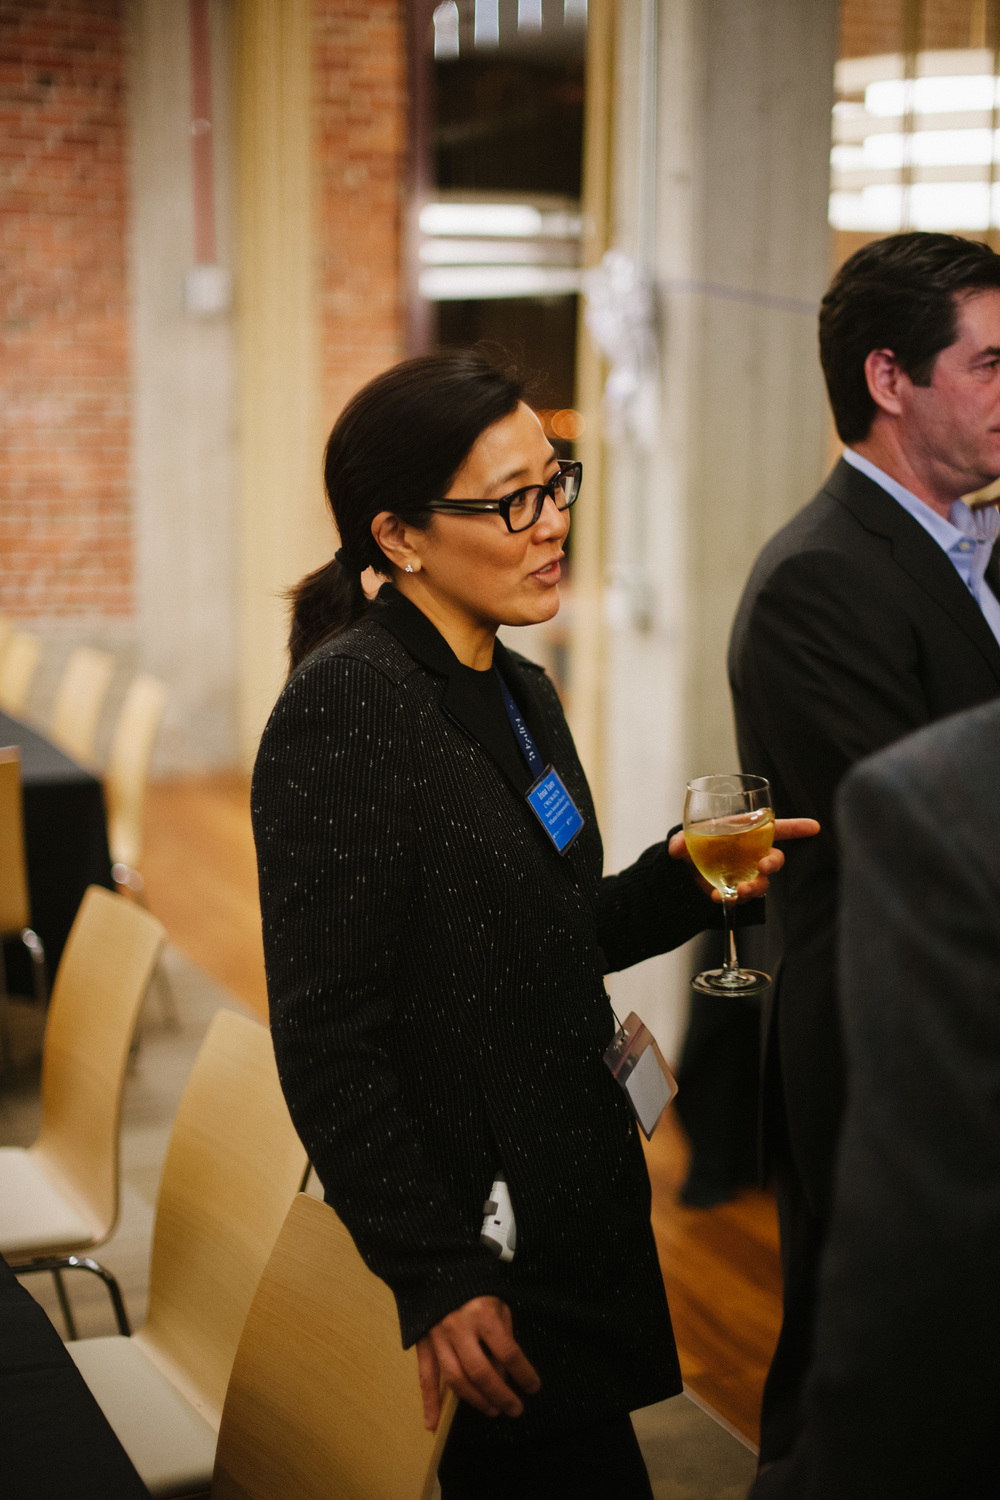 Entrepreneur_Summit_20141209_0395.jpg